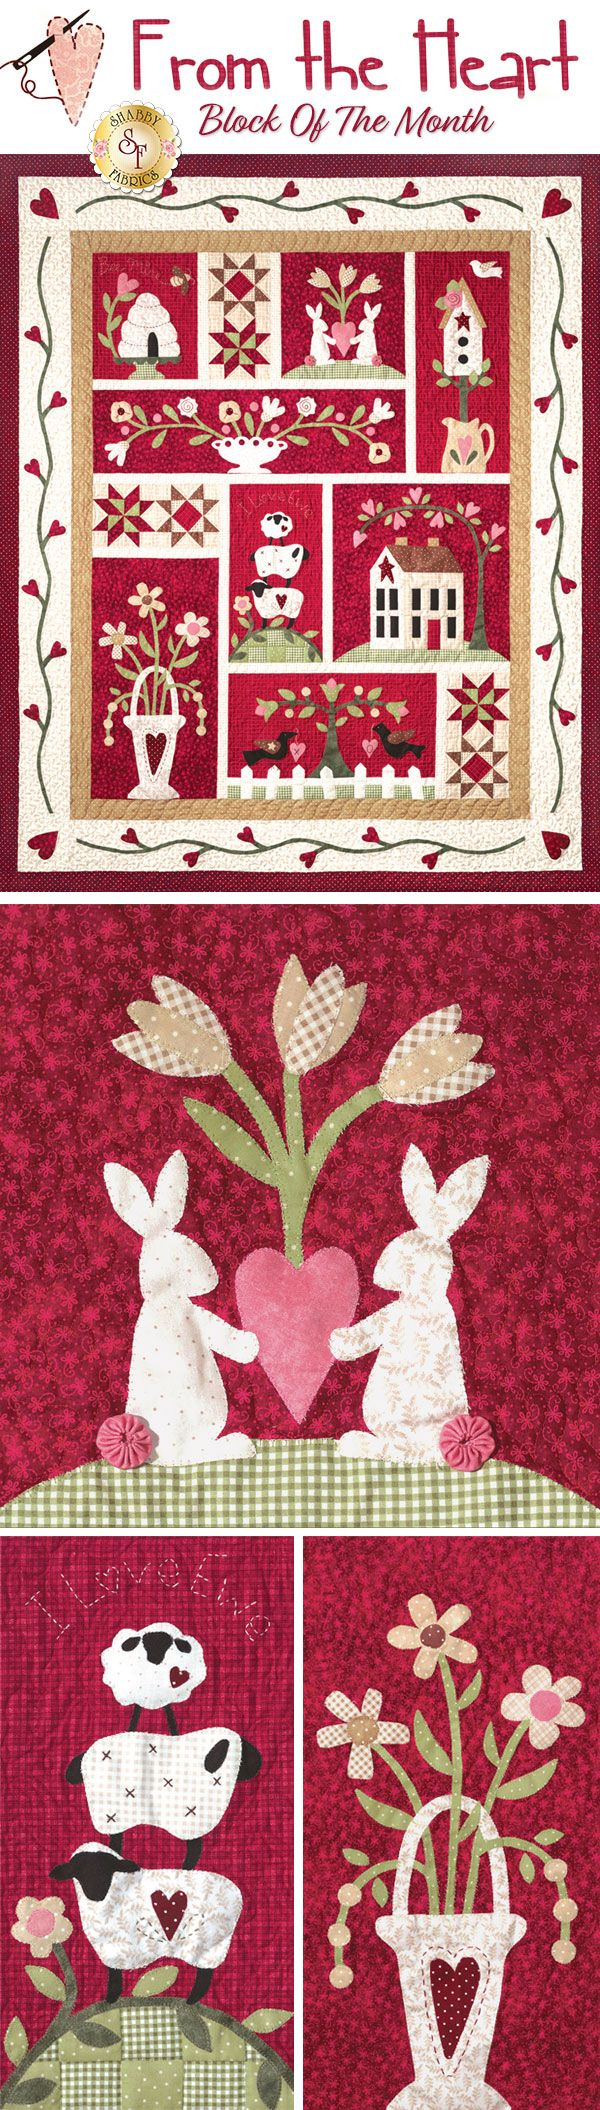 "From the Heart BOM - Fill your home with love and warmth with the darling From the Heart Block of the Month! This gorgeous quilt was designed by The Quilt Company, and features everything from a bee spelling out ""Bee Mine"" to bunnies holding a heart, floral bouquets, and so much more!"